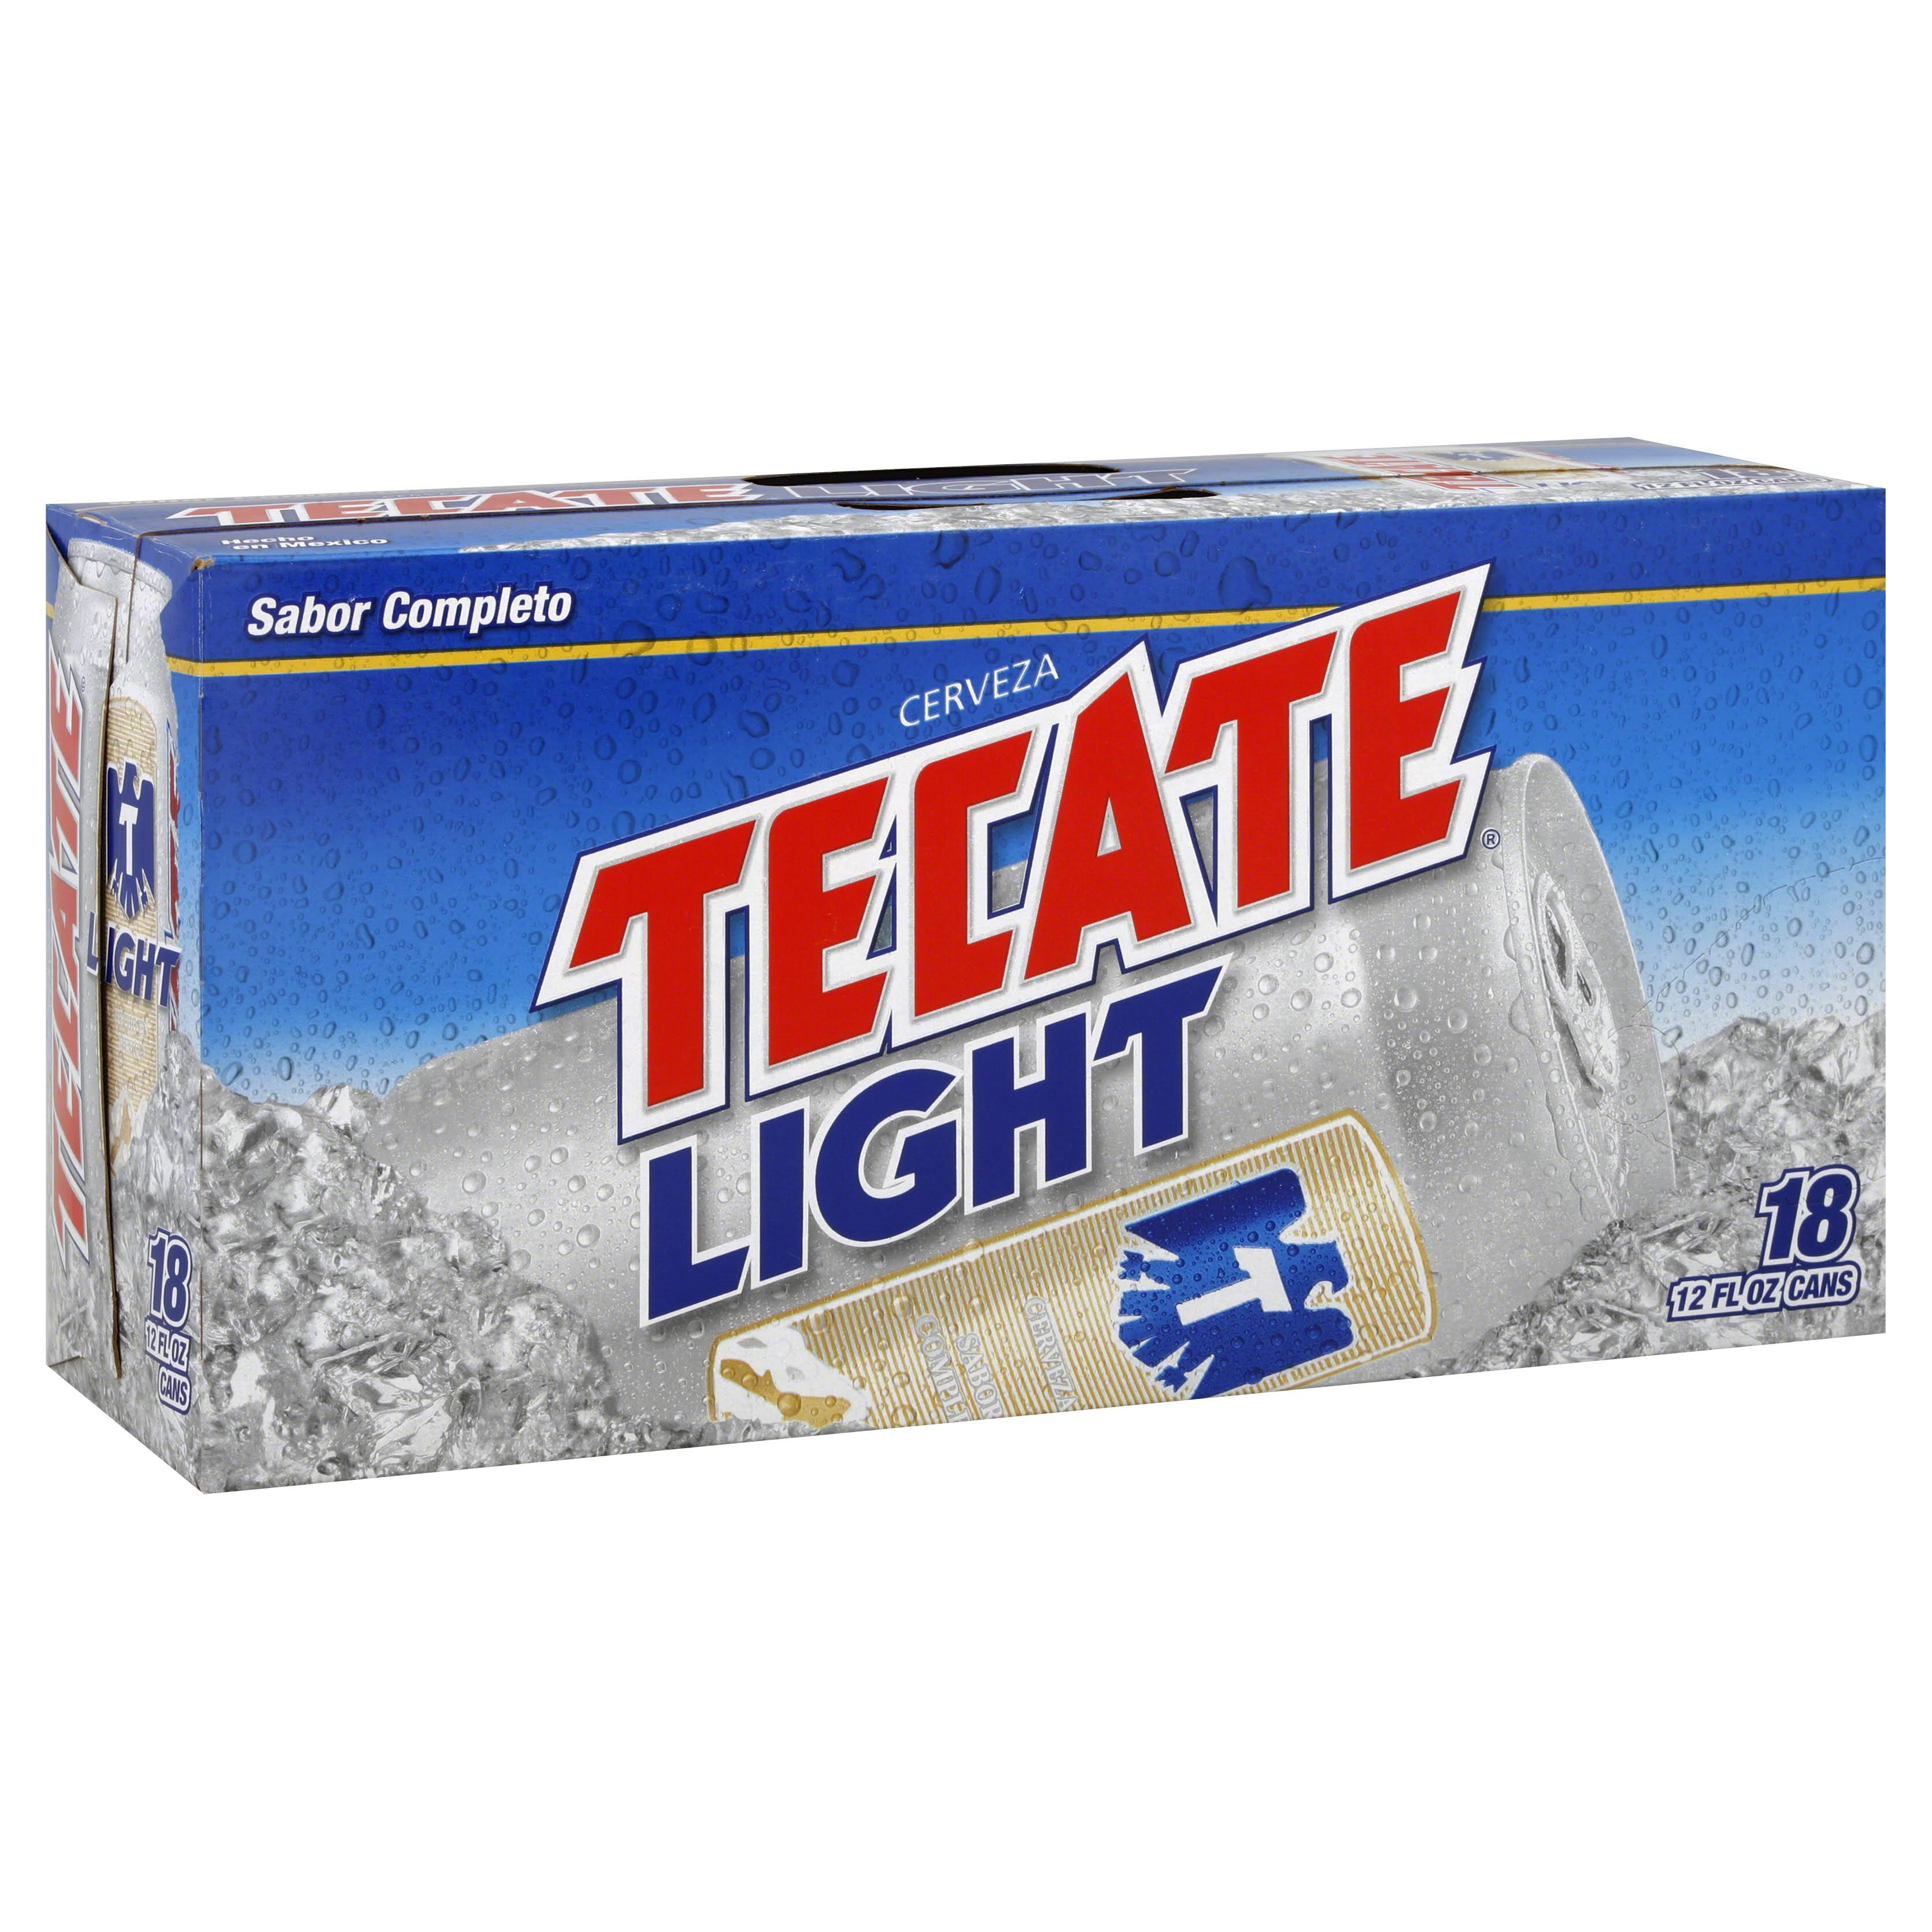 Tecate Light Mexican Beer